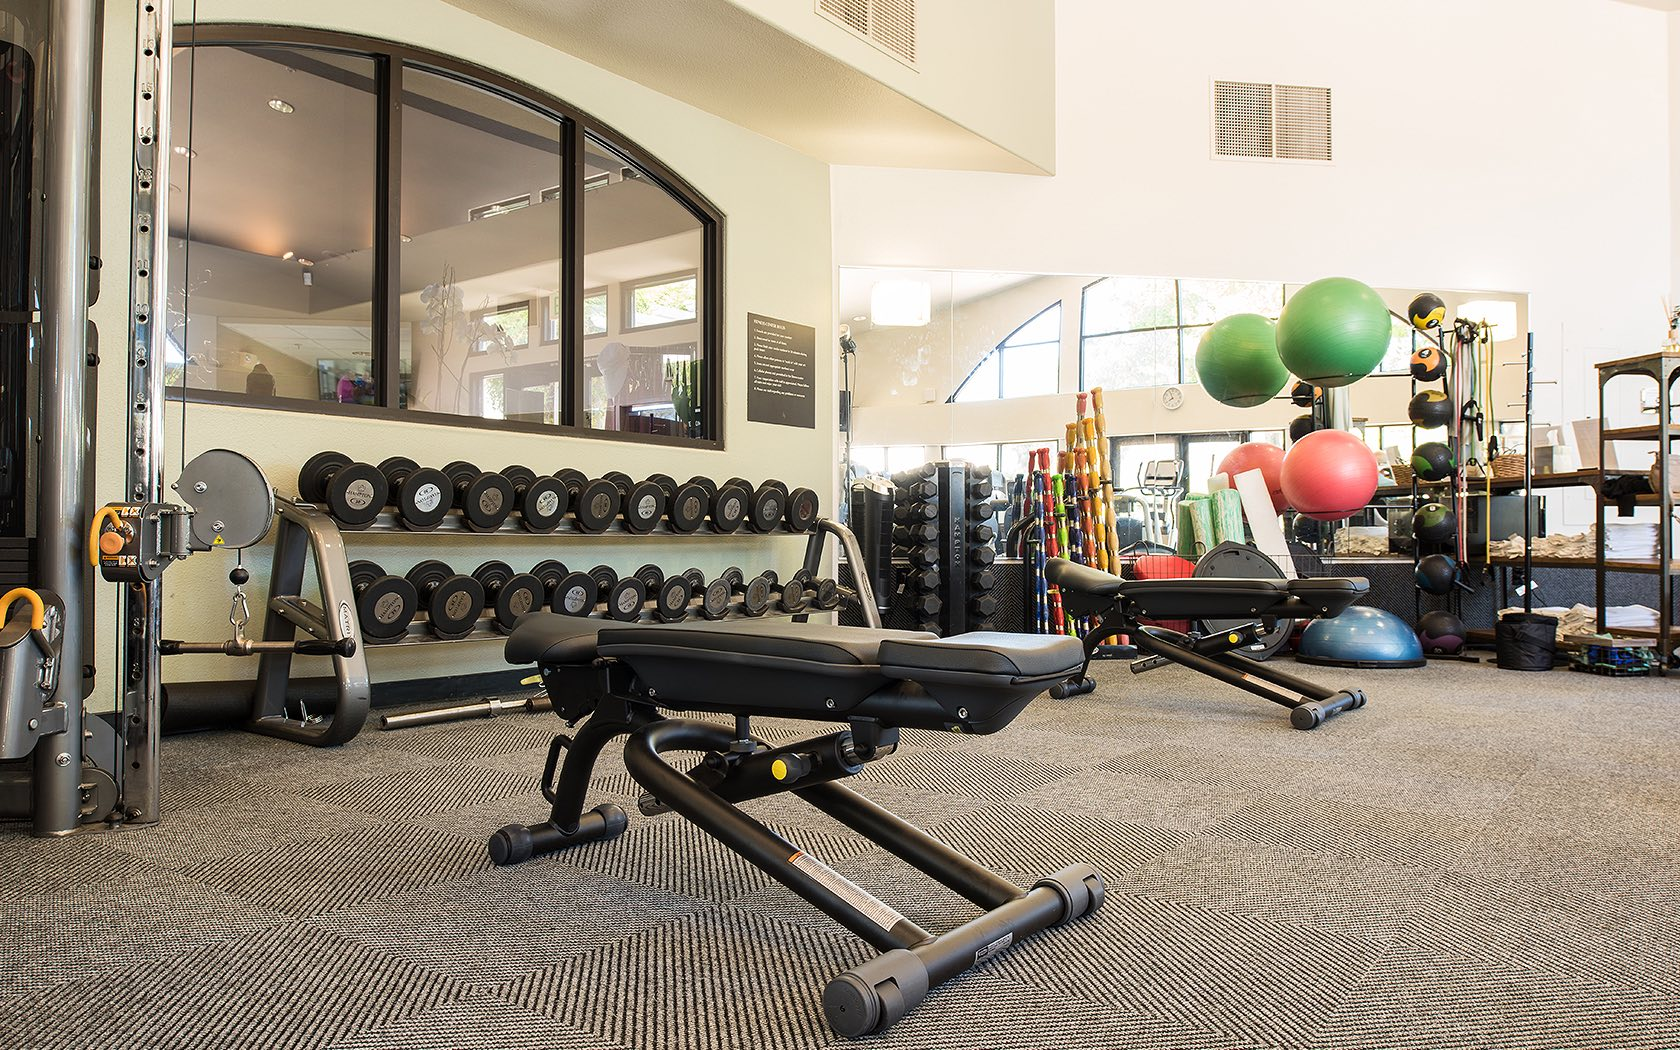 Inside the fitness center located at the Spa at Silverado